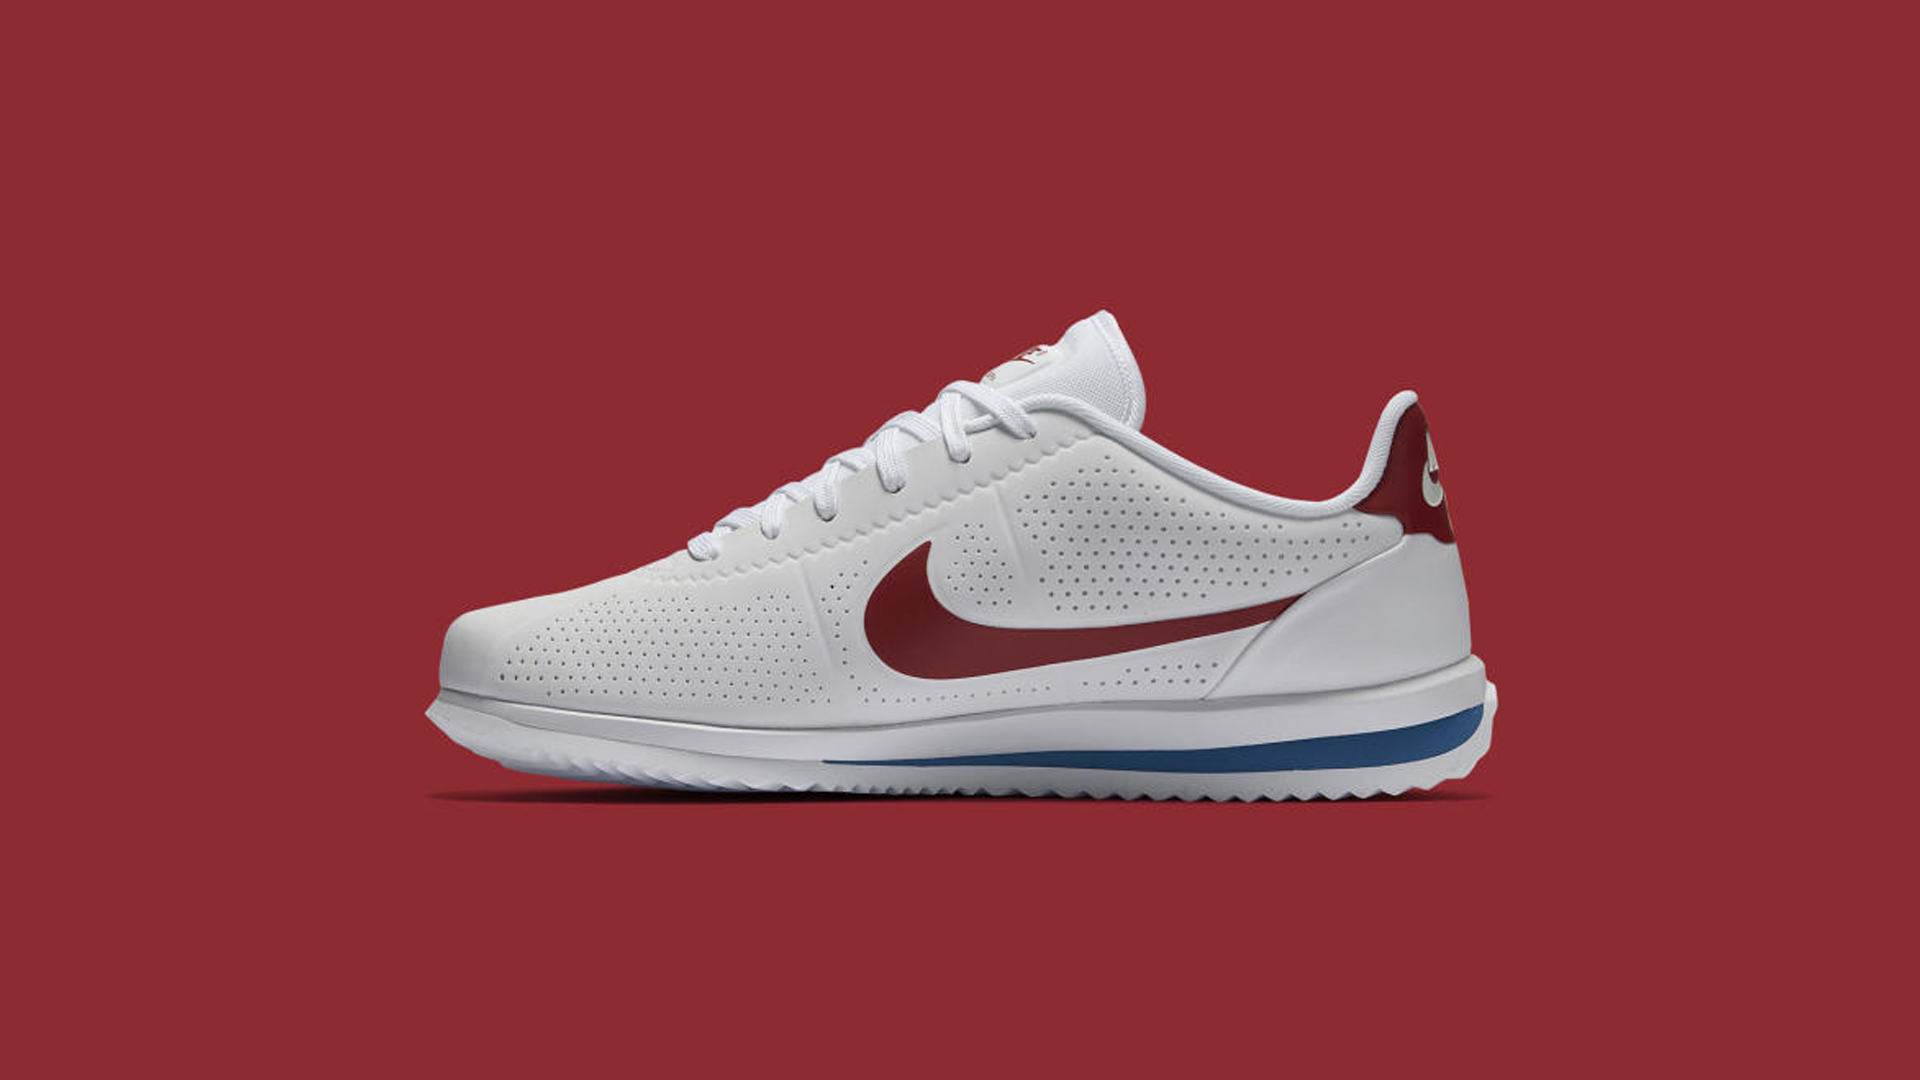 newest 96755 7206e The Nike Cortez Ultra Moire is for the Modern Day Forrest ...